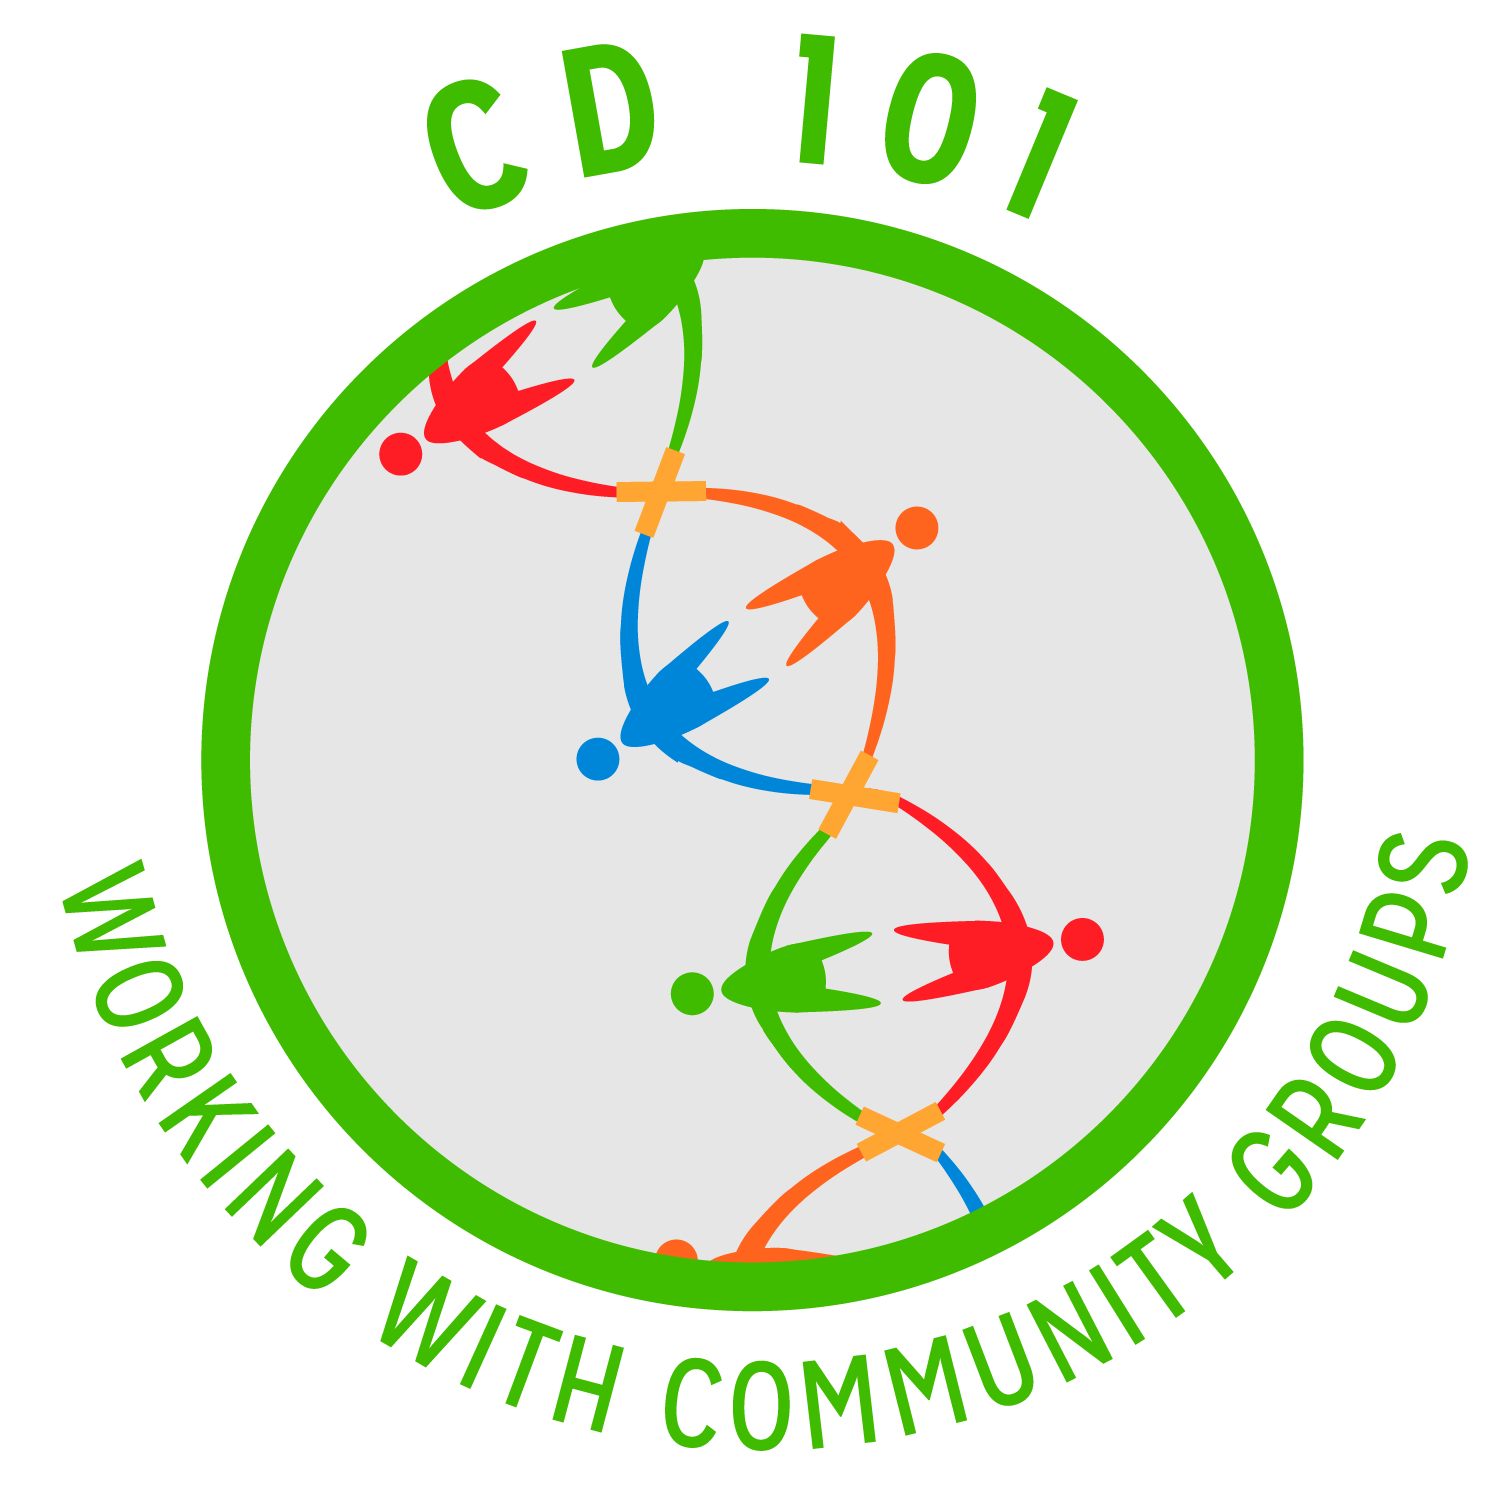 badge cd 1